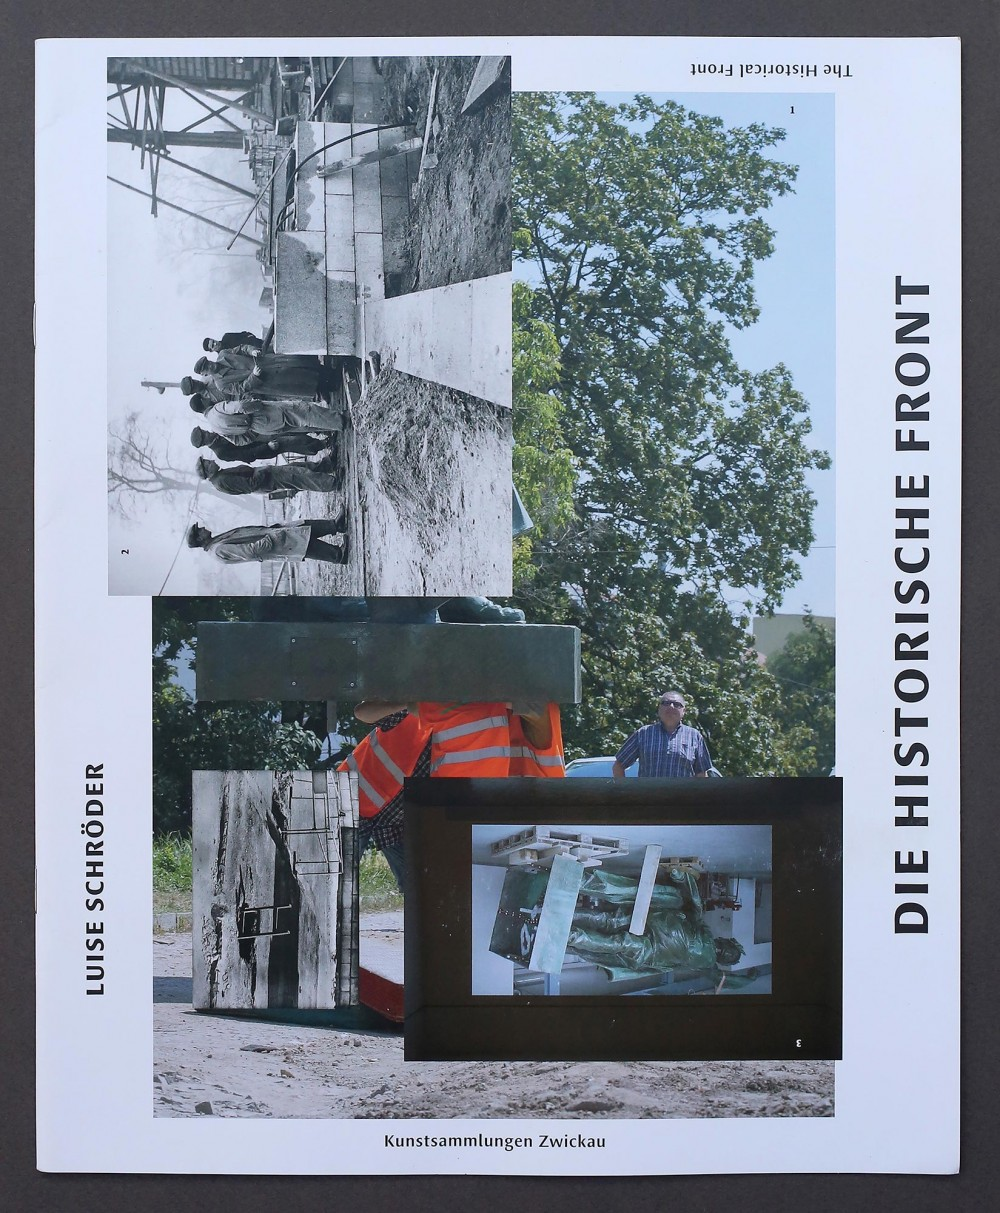 Catalogue, The Historical Front, 2013